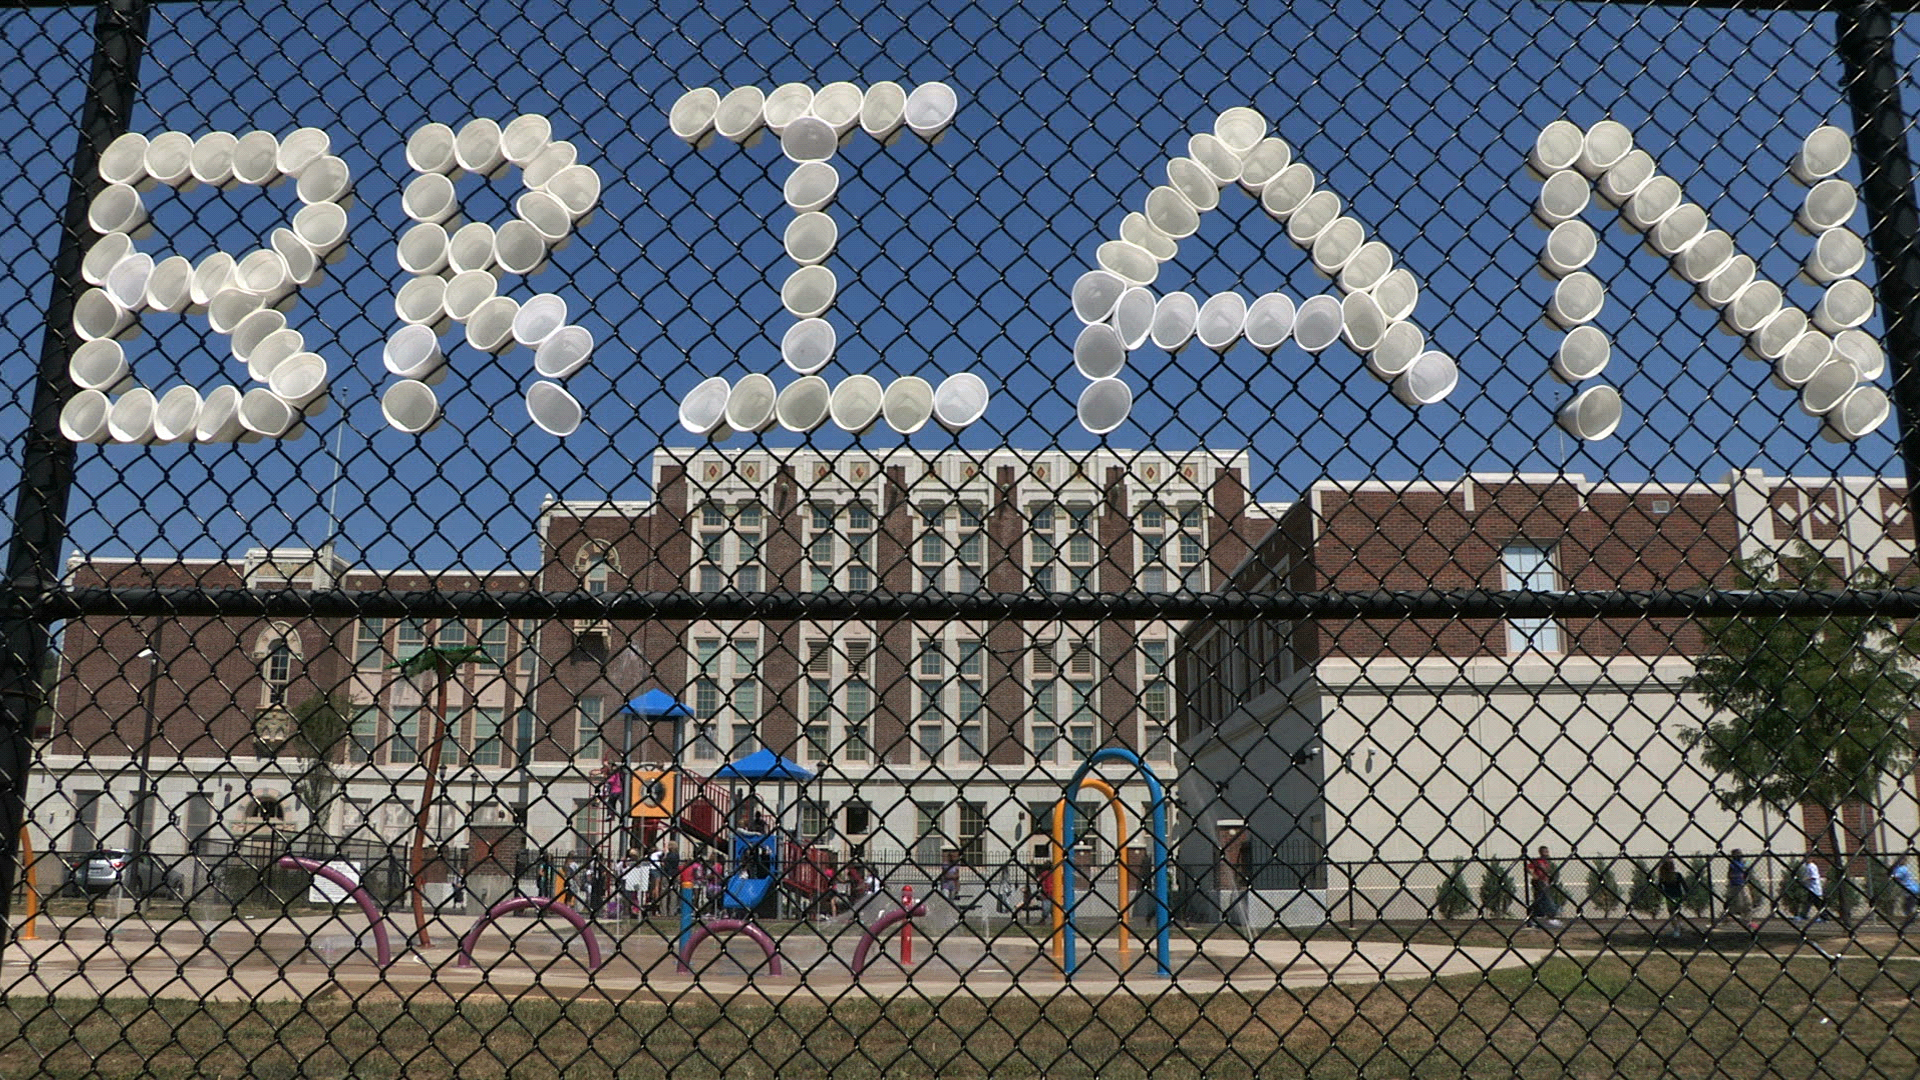 A memorial of Styrofoam cups pays tribute to Brian Thompson, 27, who was murdered across the street from the school in the summer of 2012. Thompson was an Oyler parent who had attended the school as a child. When the new Oyler School reopened later that summer, Hockenberry hoped its presence would help slow the crime in the neighborhood. Photo by Glenn Hartong. © 2013, Amy Scott.